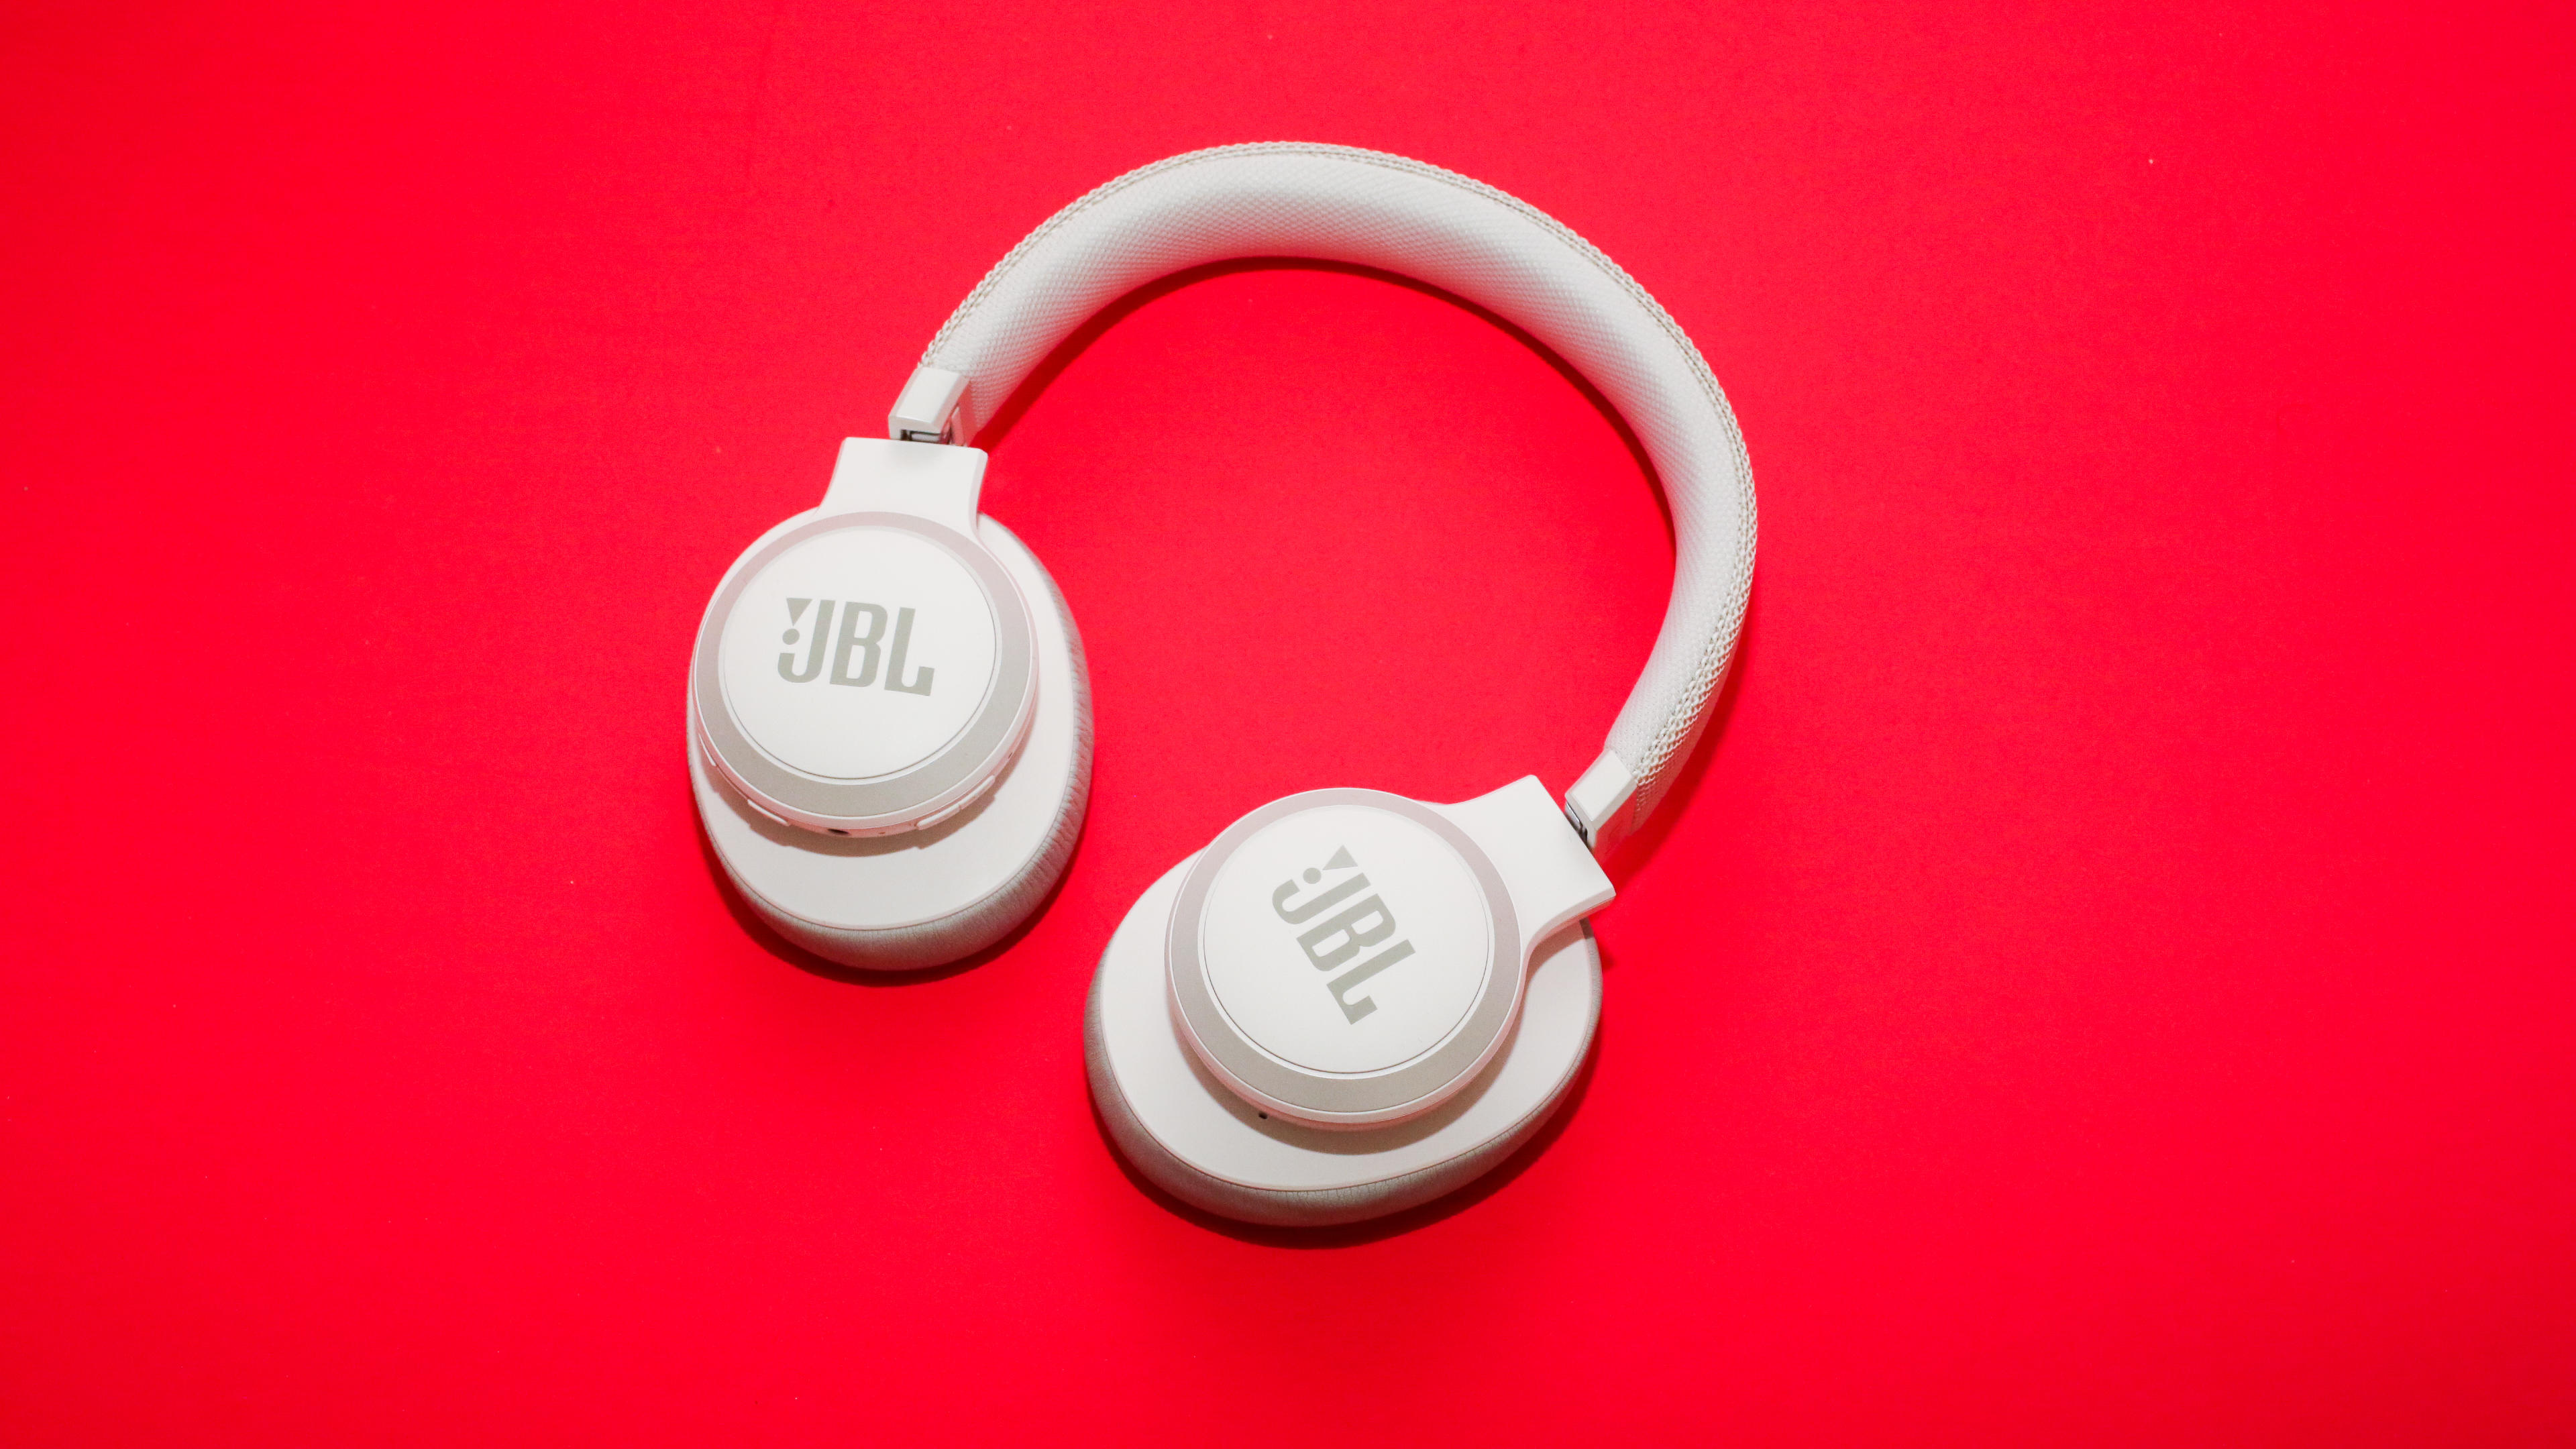 JBL 650BT Active Noise Cancelling Headphones